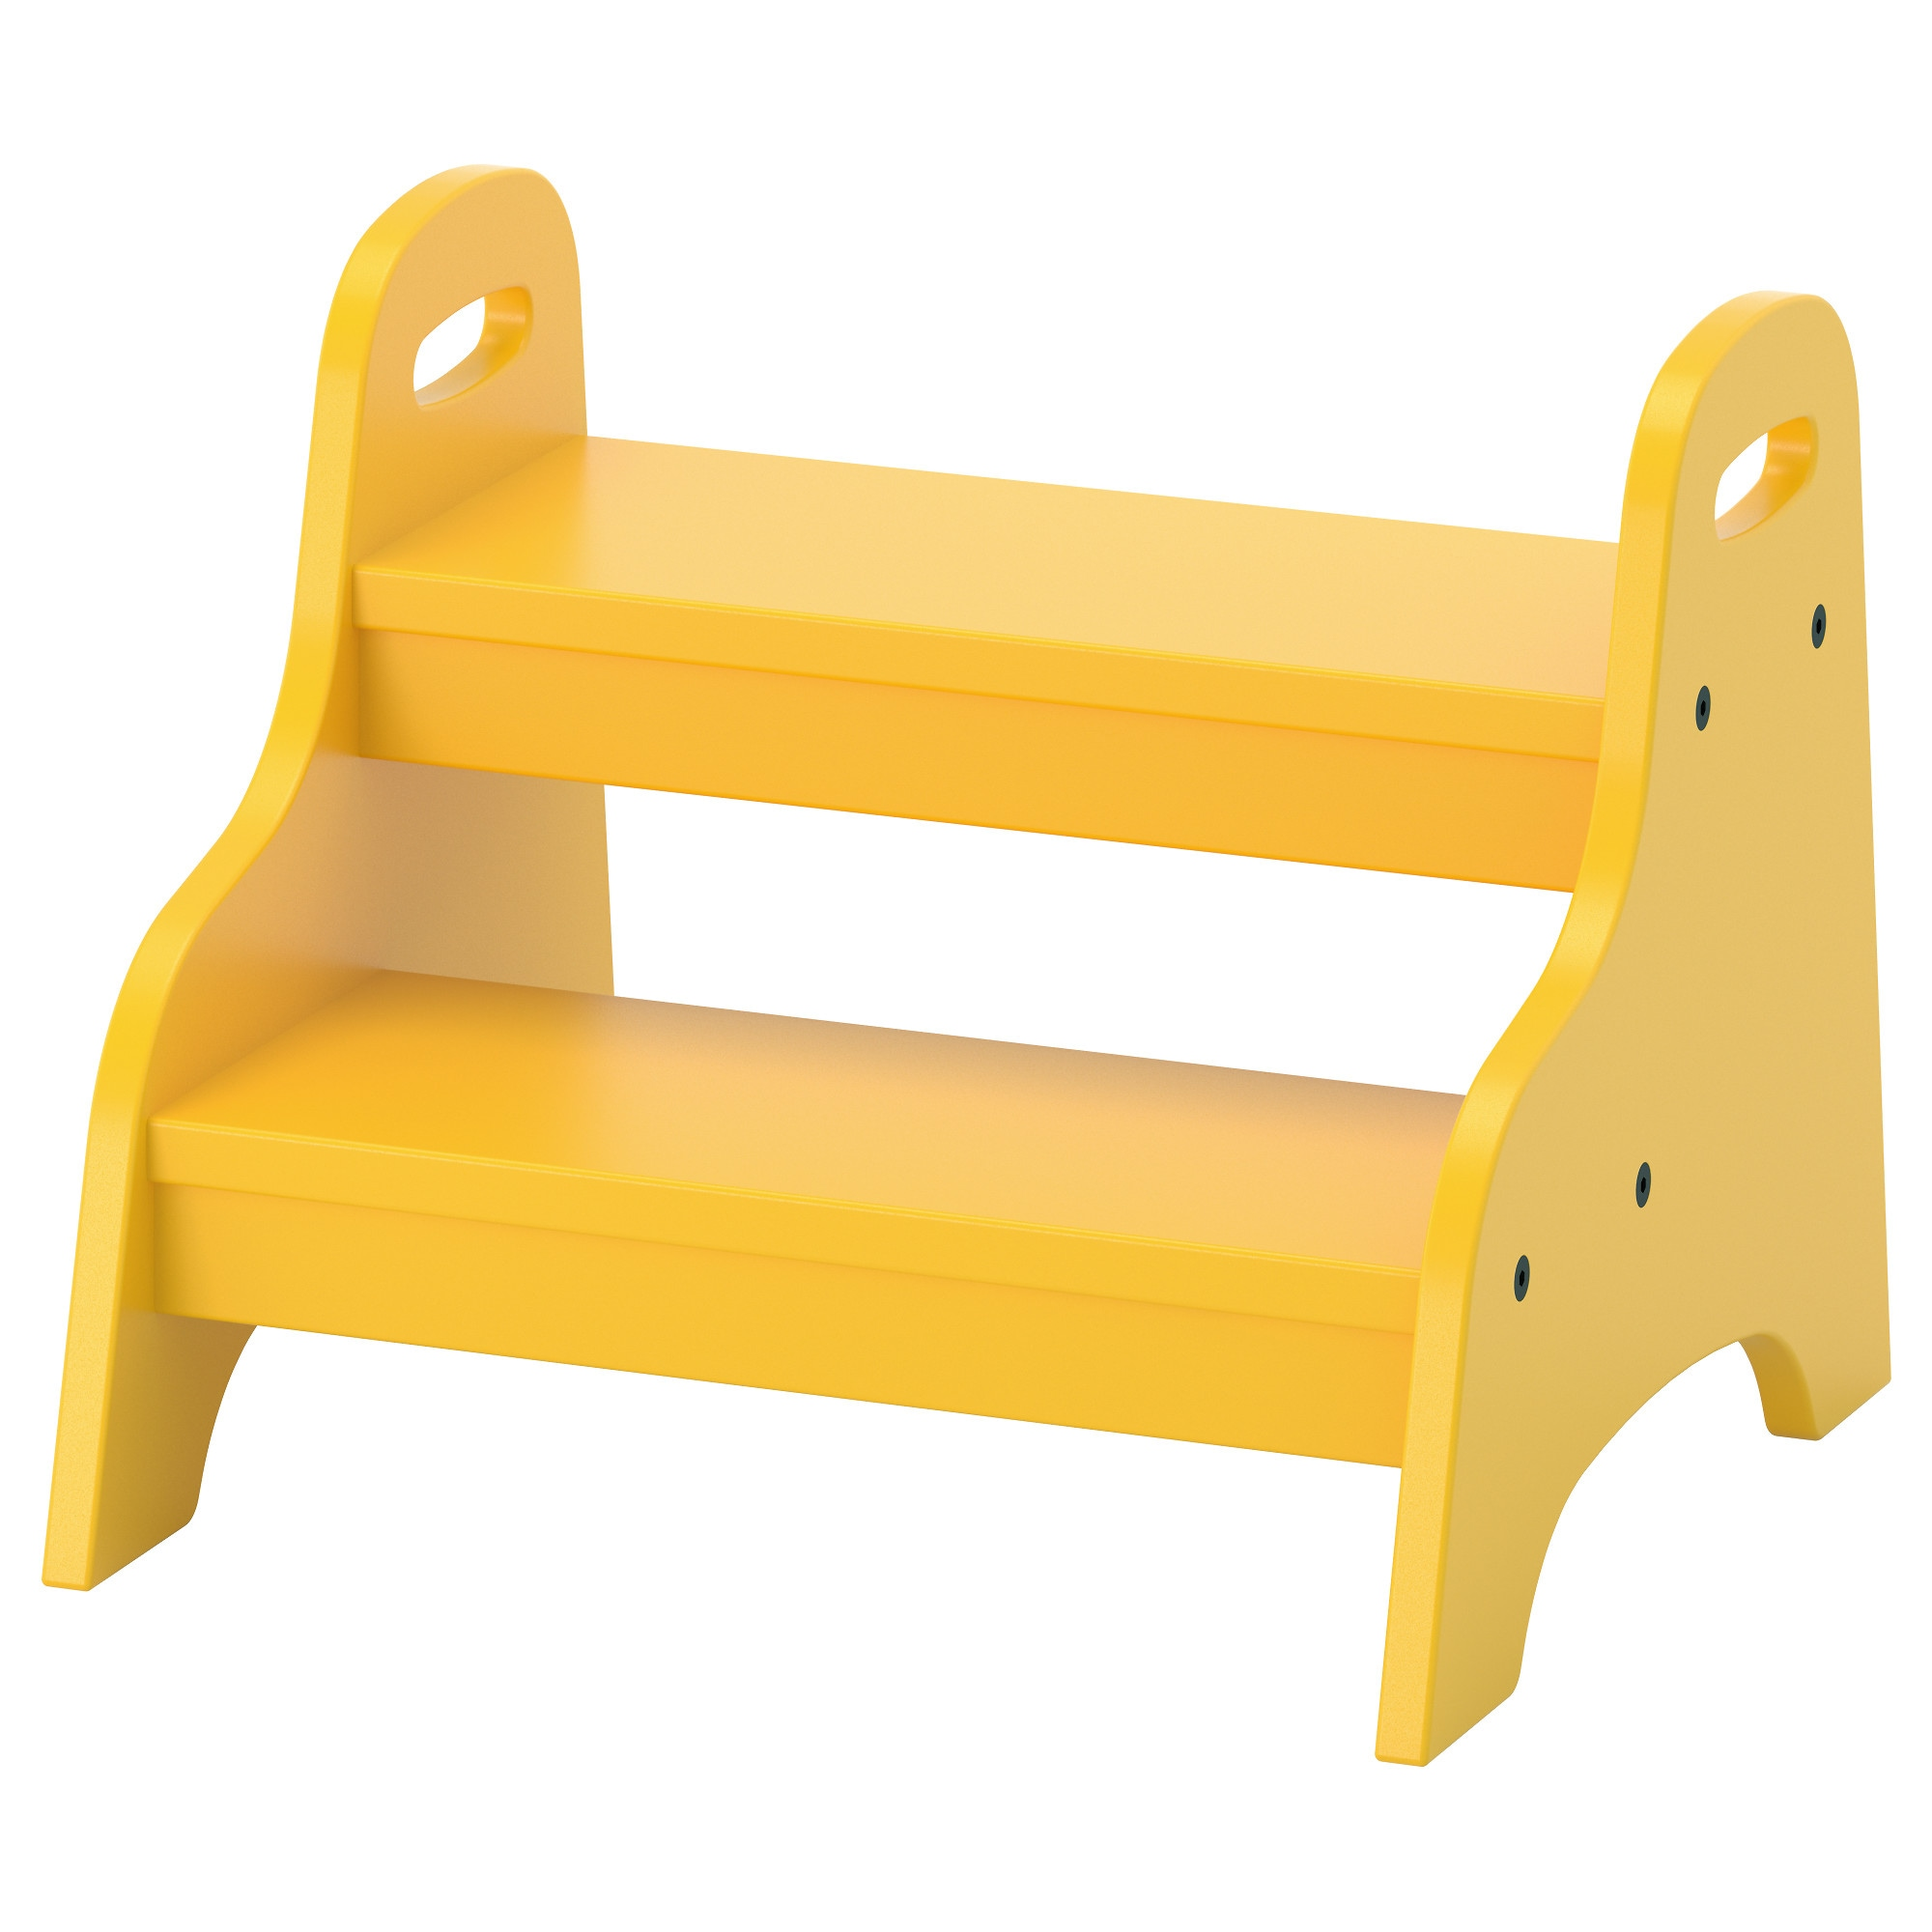 TROGEN childu0027s step stool yellow Width 15 3/4   Depth 15  sc 1 st  Ikea & Kidsu0027 Tables u0026 Chairs - IKEA islam-shia.org